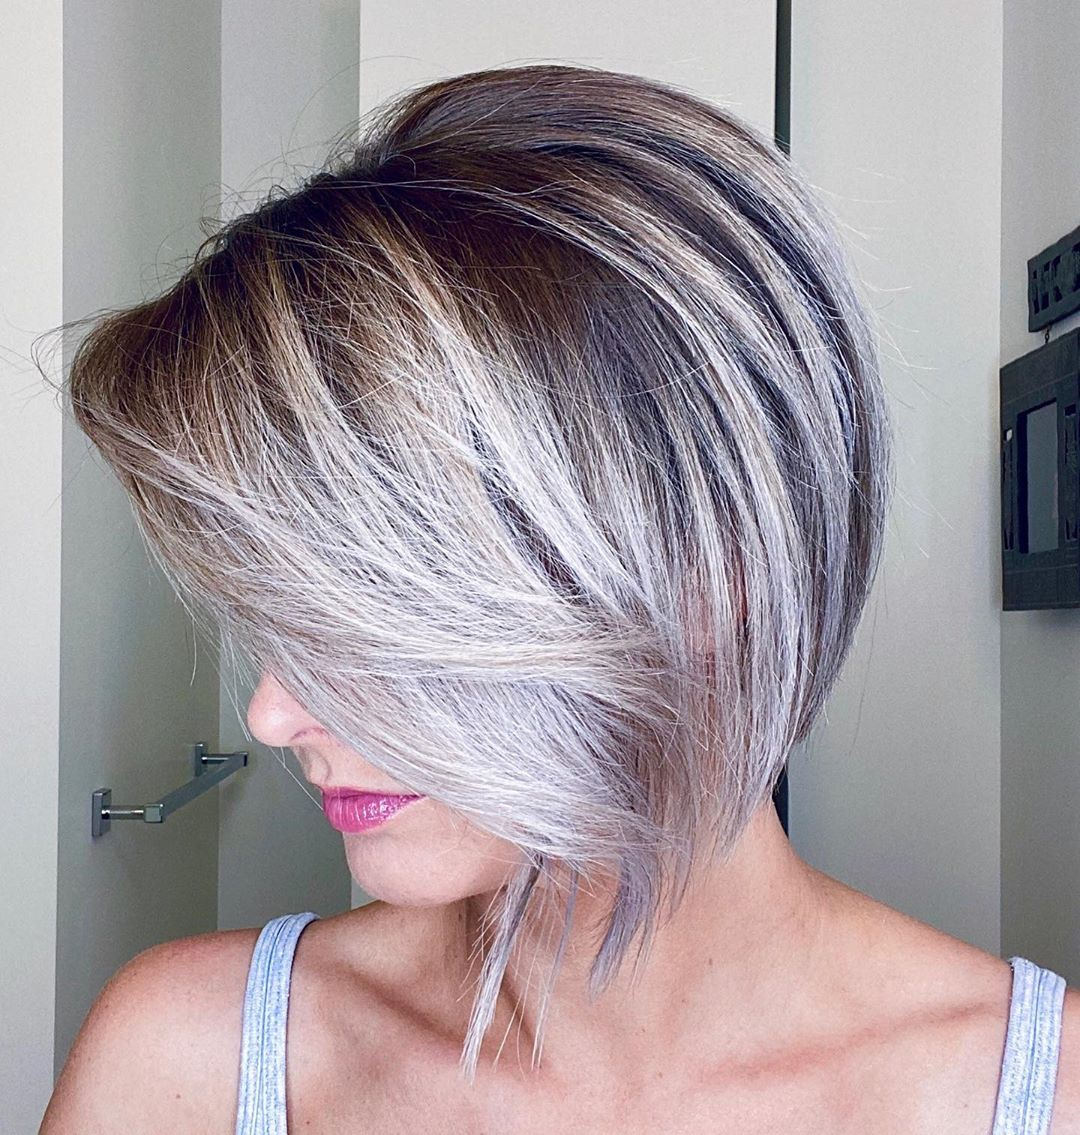 Best Pixie Bob Haircuts to Build Your Own in 2020 31